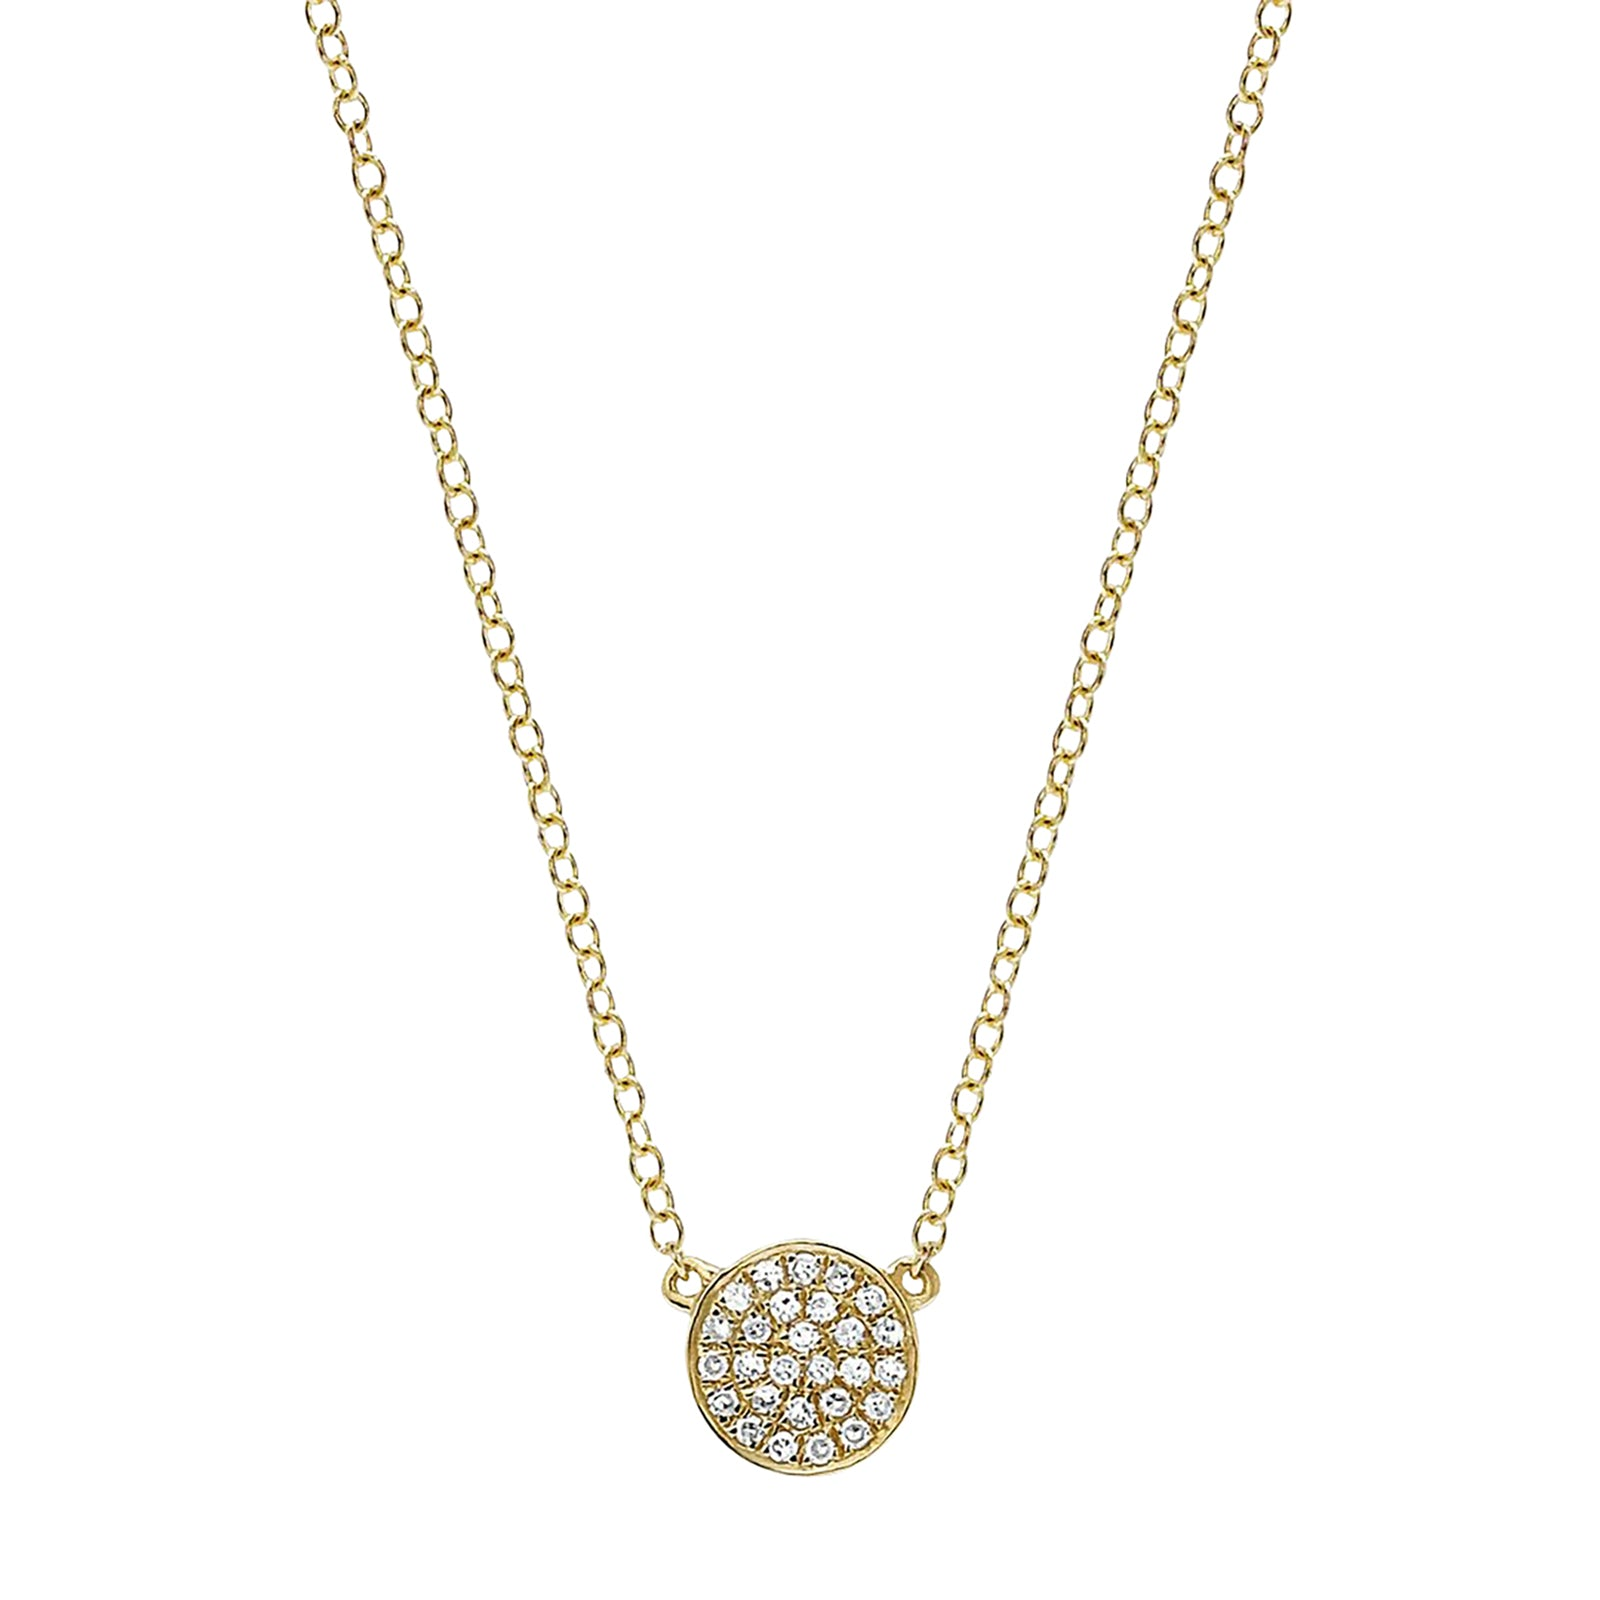 EF Collection Mini Diamond Disk Necklace - Yellow Gold - Necklaces - Broken English Jewelry